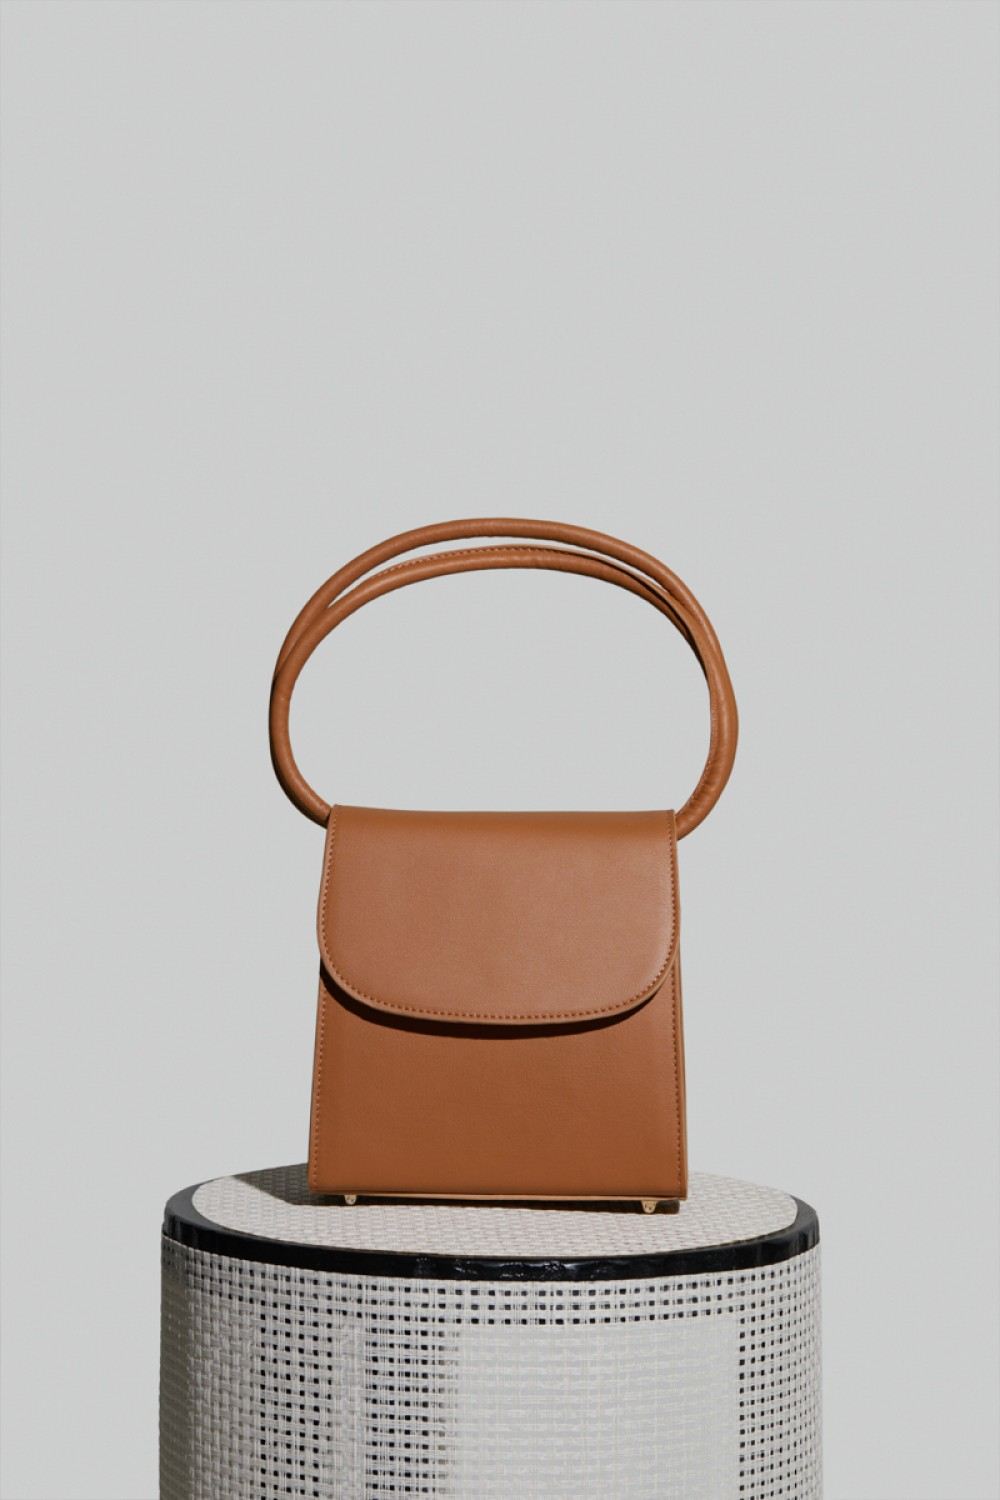 Loop Bag in Camel Leather